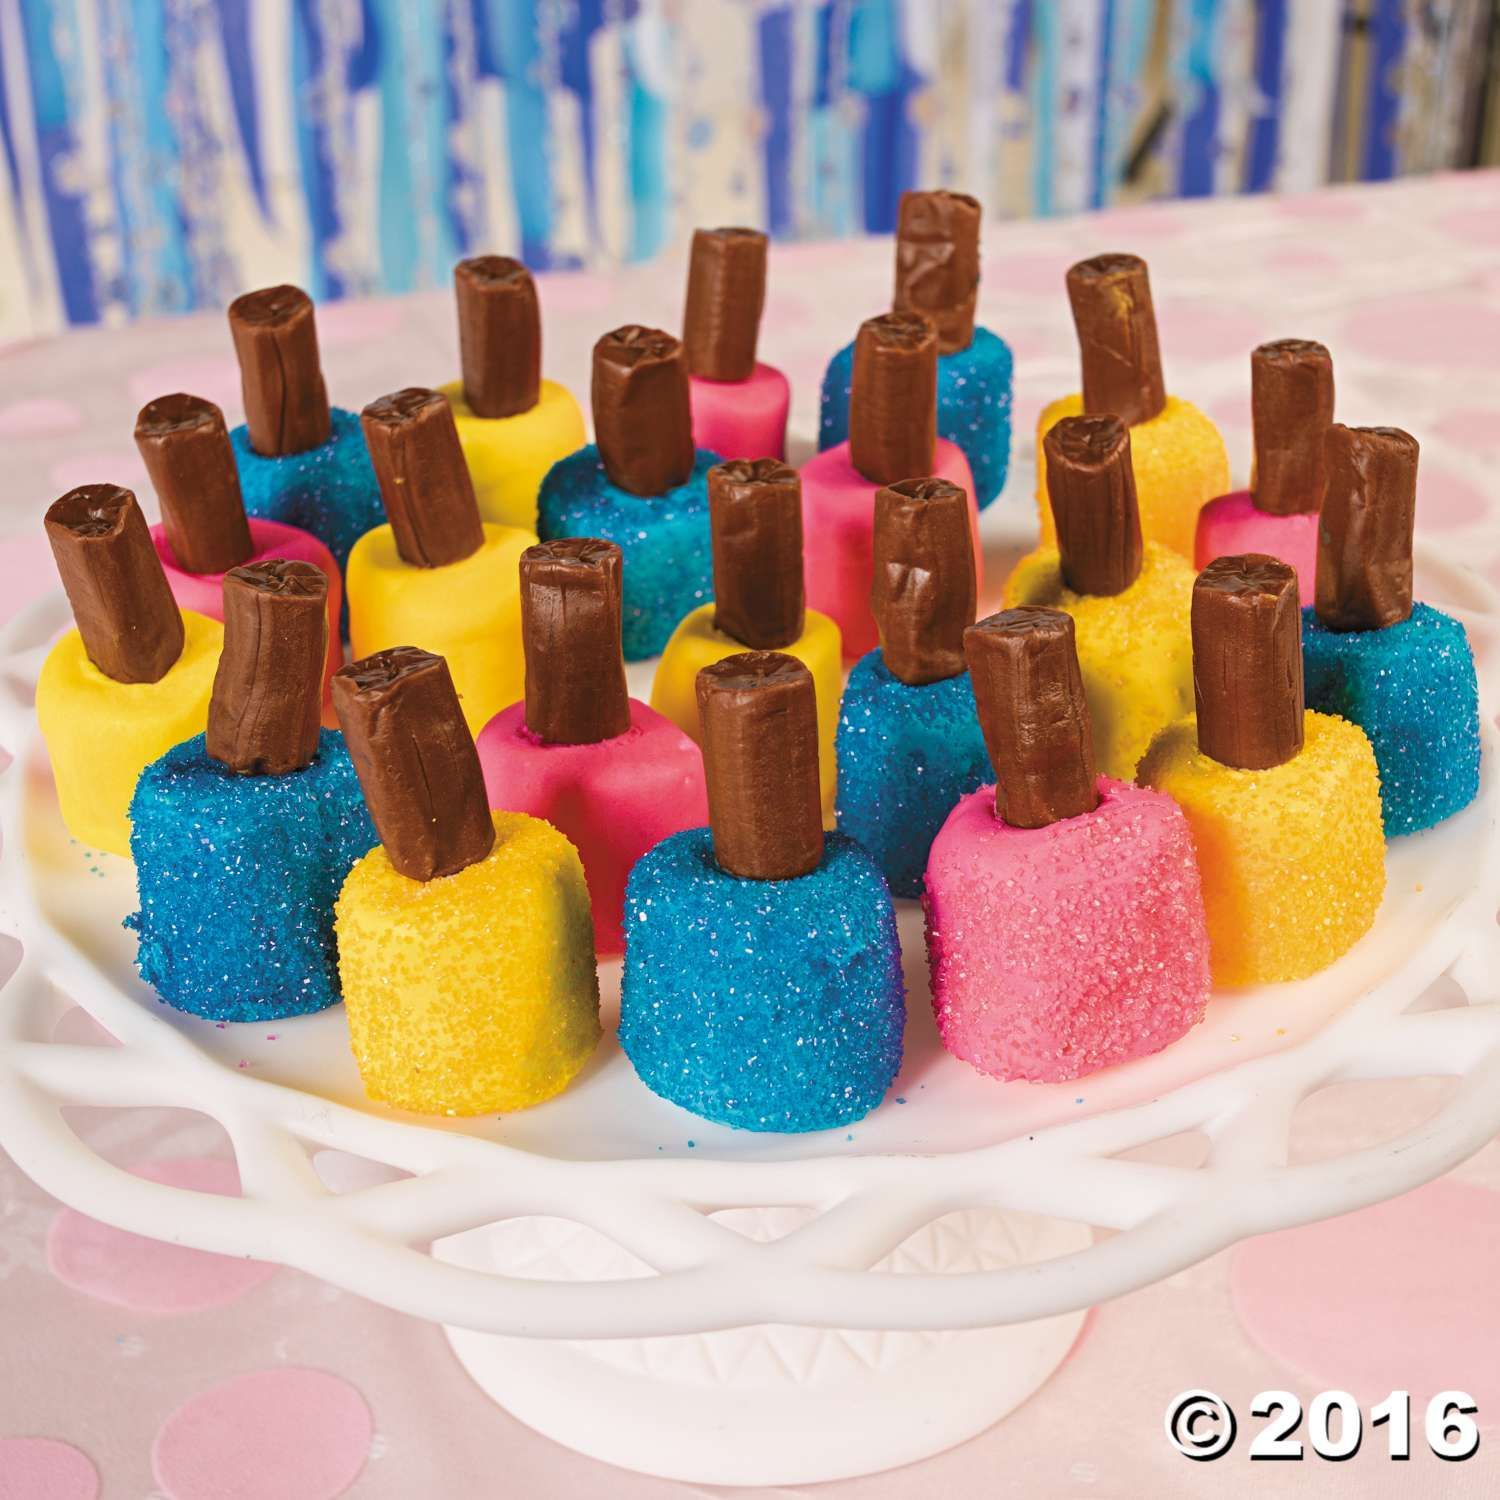 Nail Polish Marshmallow Bites Recipe | teenage girl | Pinterest